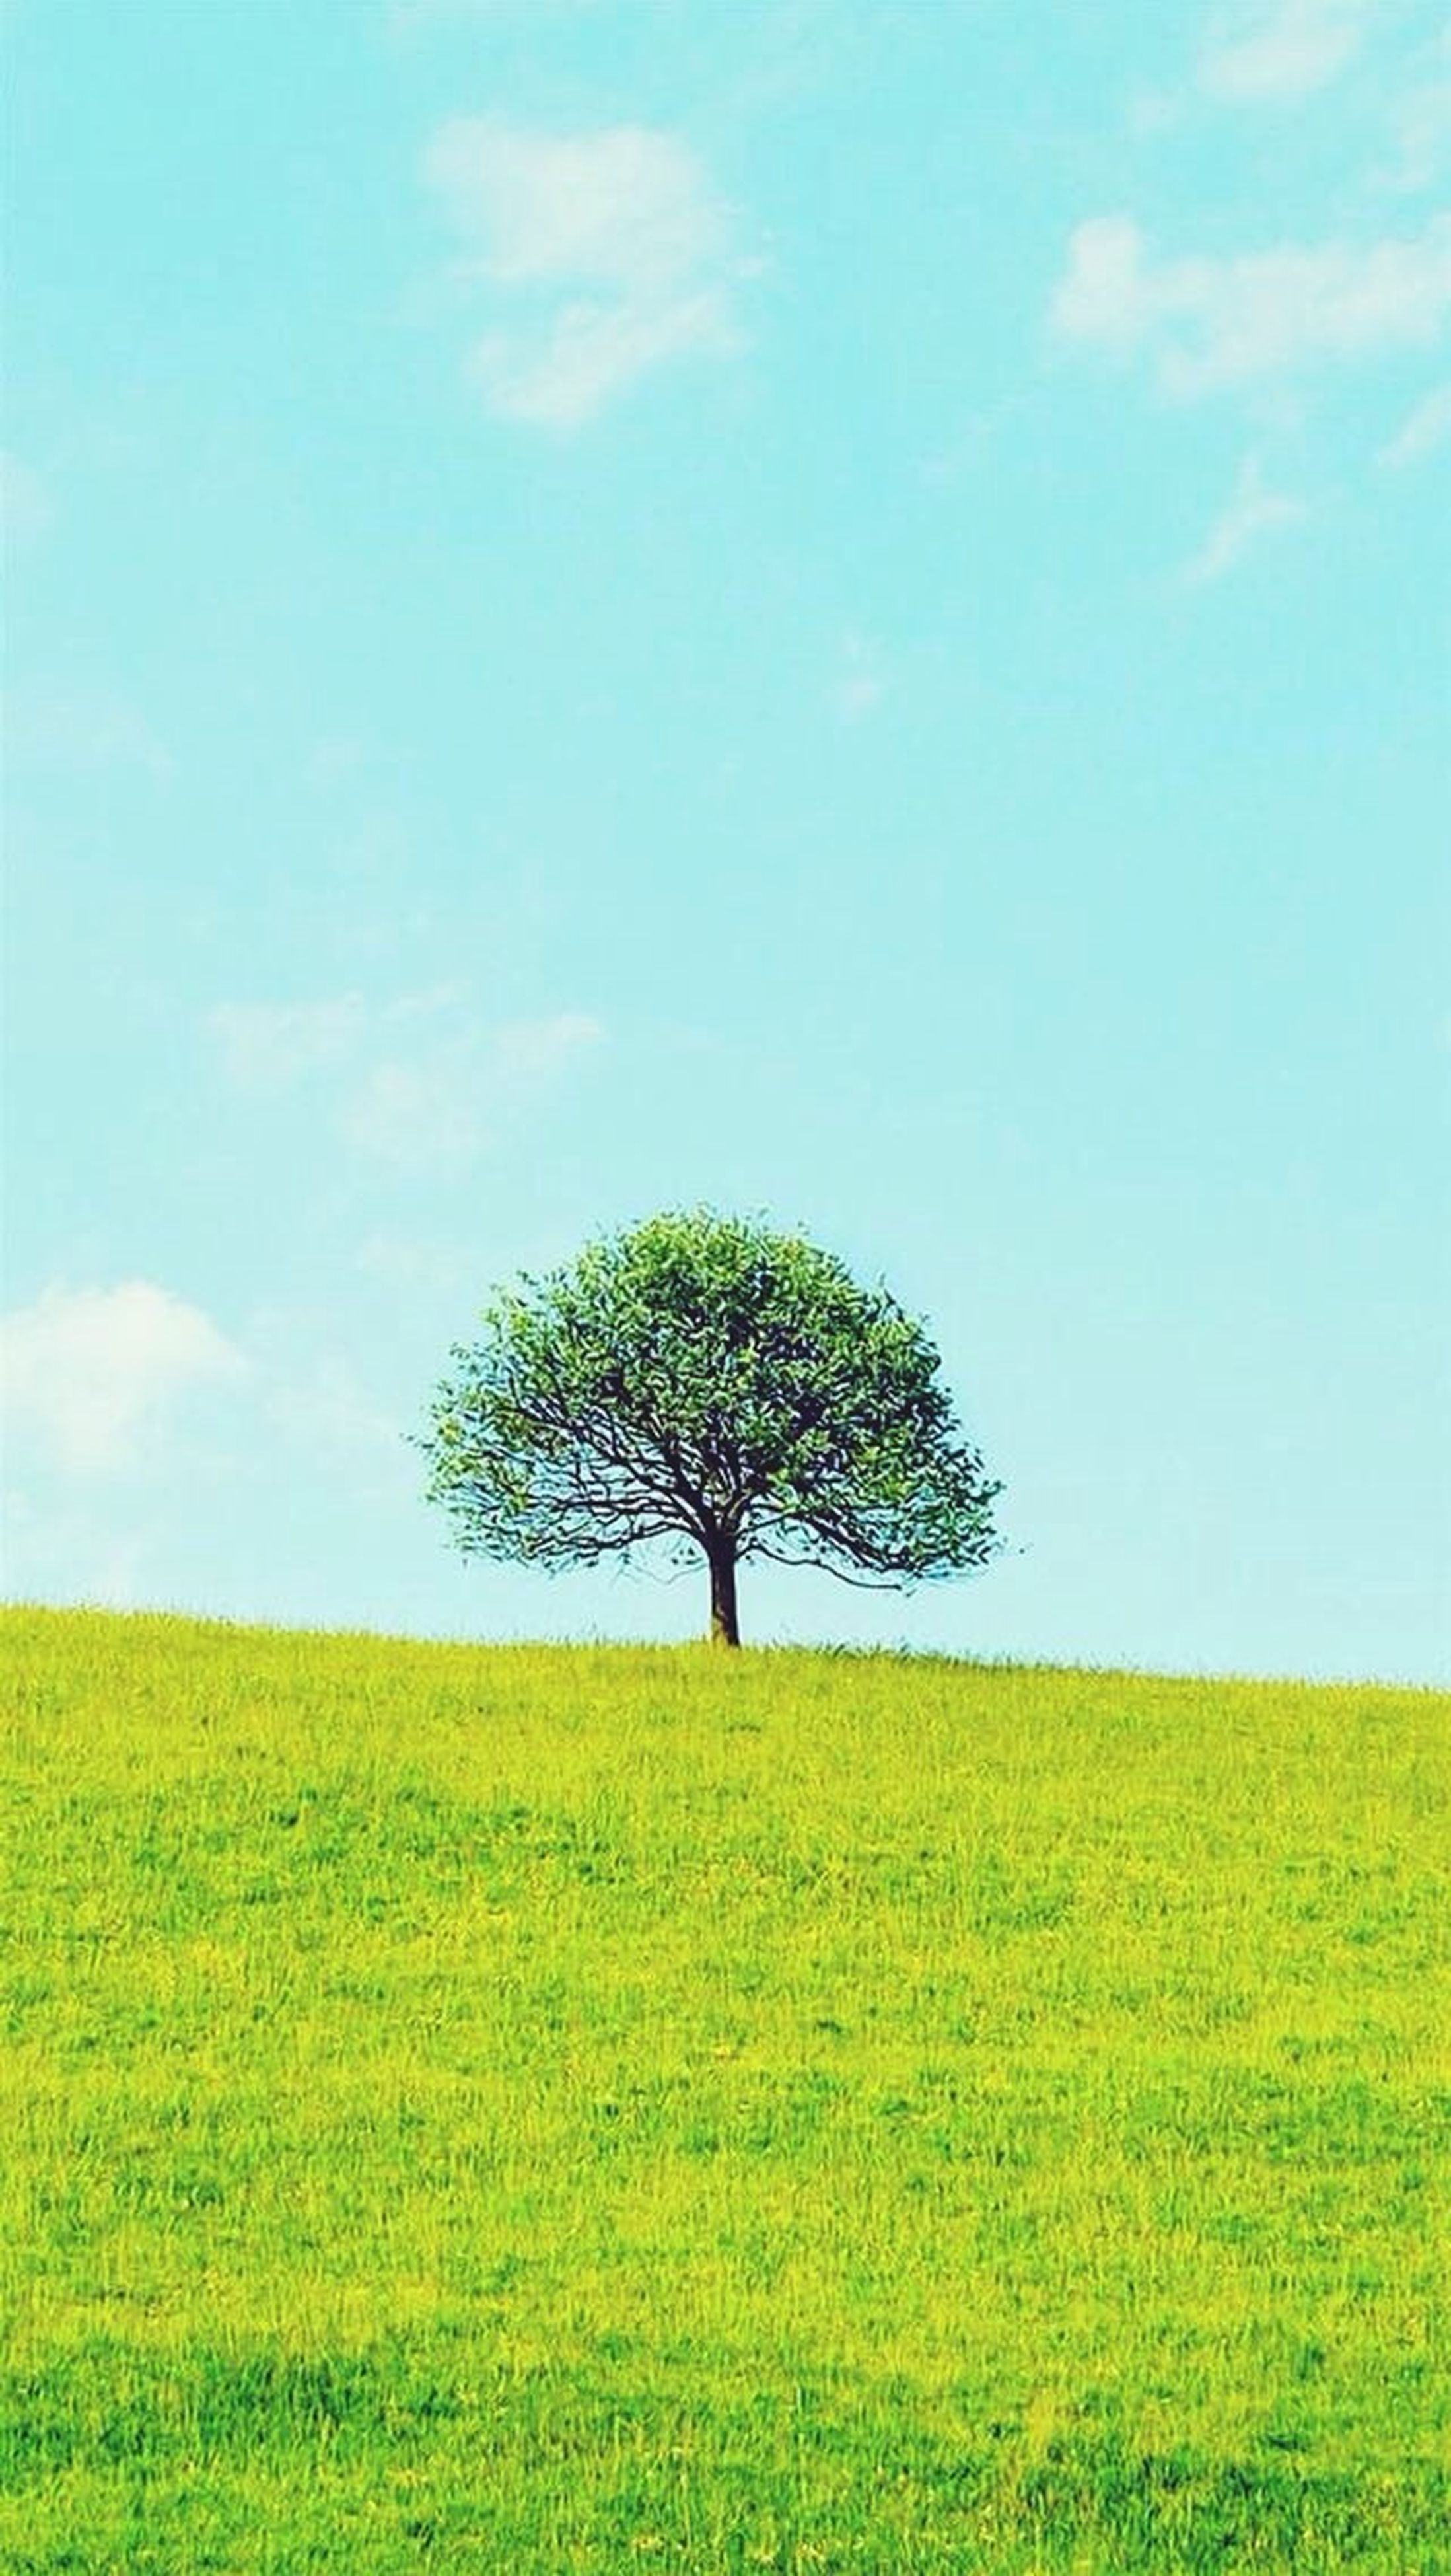 tree, tranquility, grass, tranquil scene, landscape, field, sky, beauty in nature, green color, scenics, growth, nature, single tree, grassy, blue, solitude, idyllic, green, cloud, day